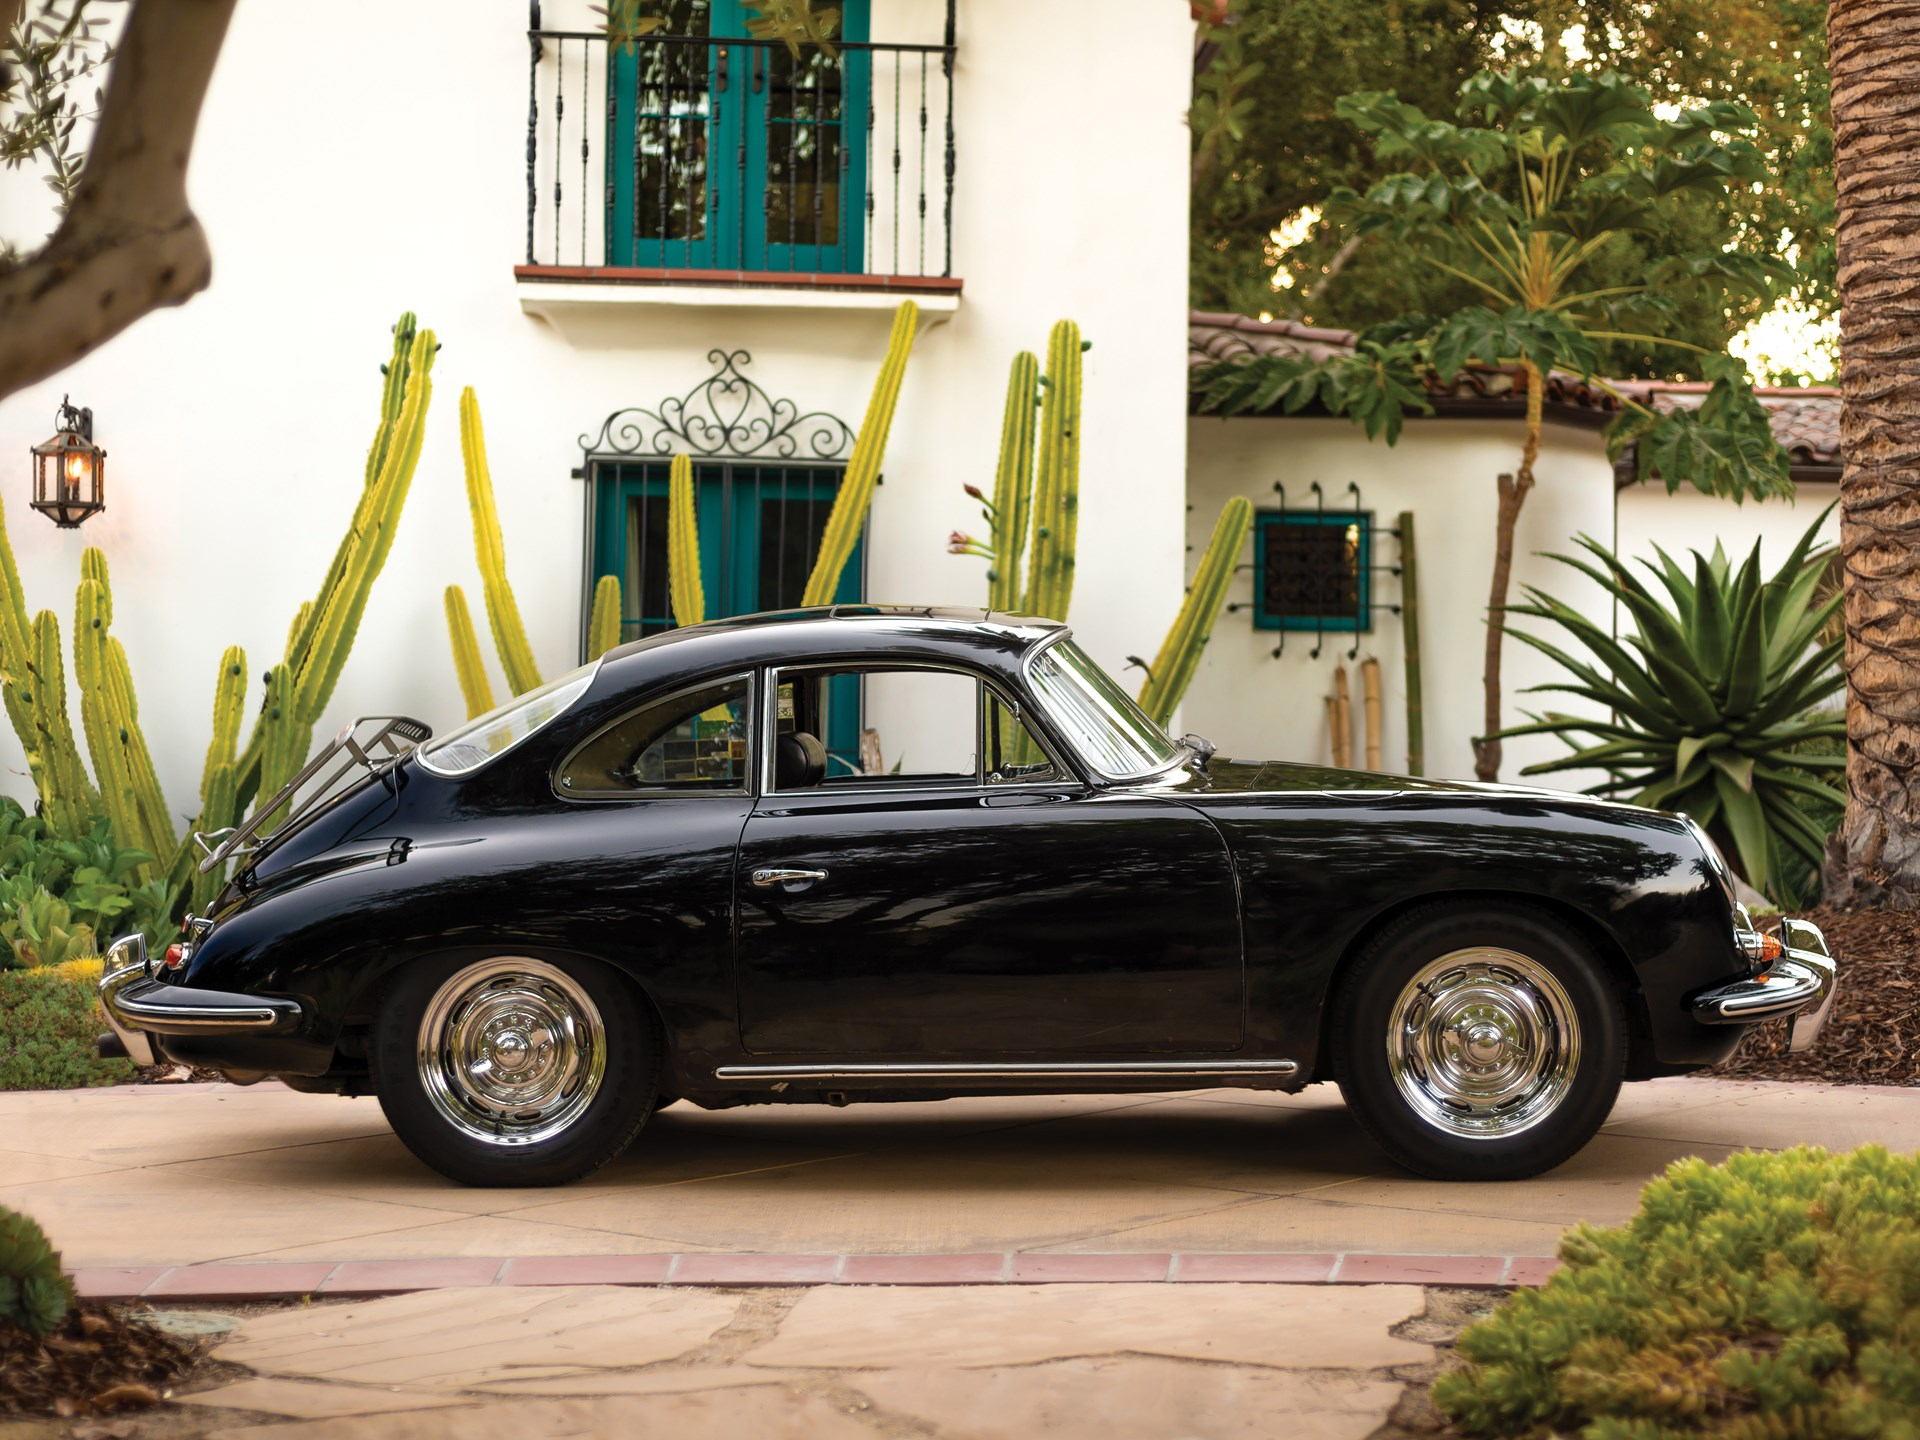 1963 Porsche 356 B 1600 'Sunroof' Coupe by Reutter